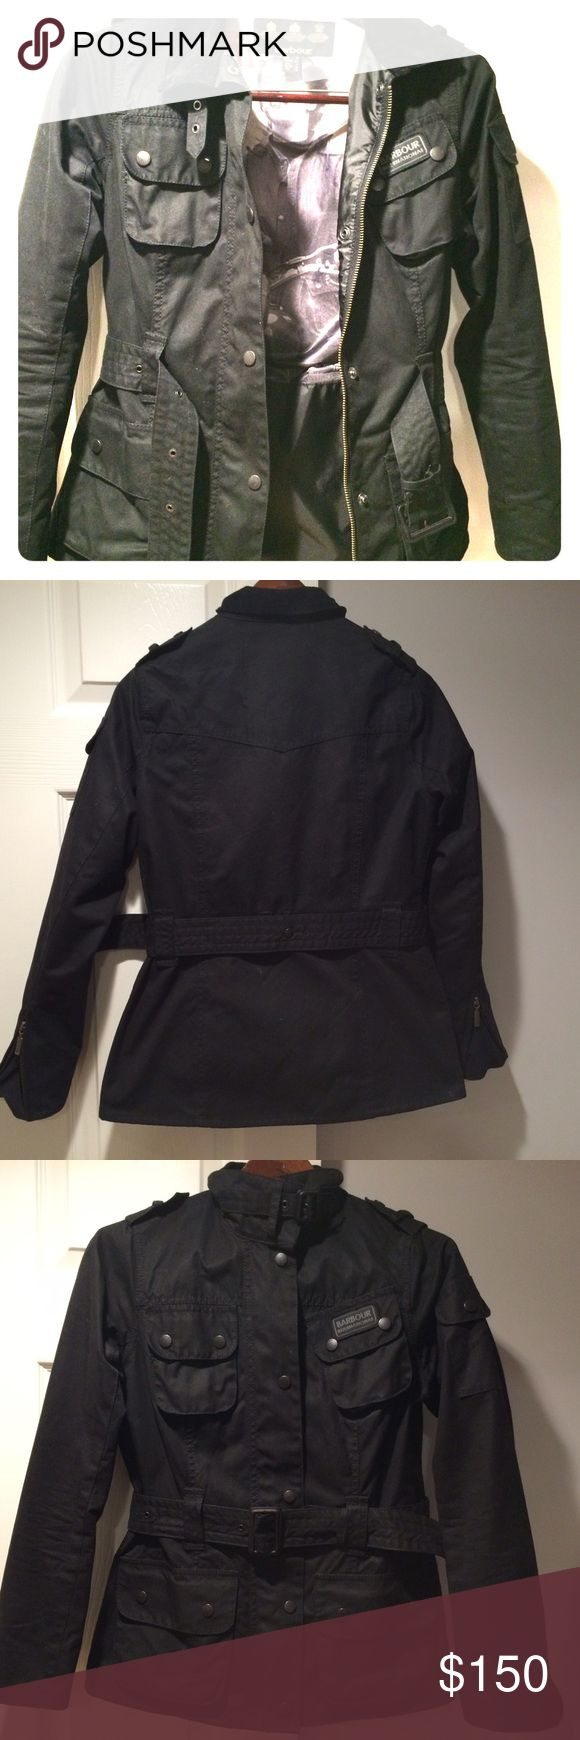 Barbour bomber jacket Heavy weight Barbour bomber jacket. Black with retro vintage liner inside. Belt gives a fitted look. USA size 4/UK size 8. Barbour Jackets & Coats